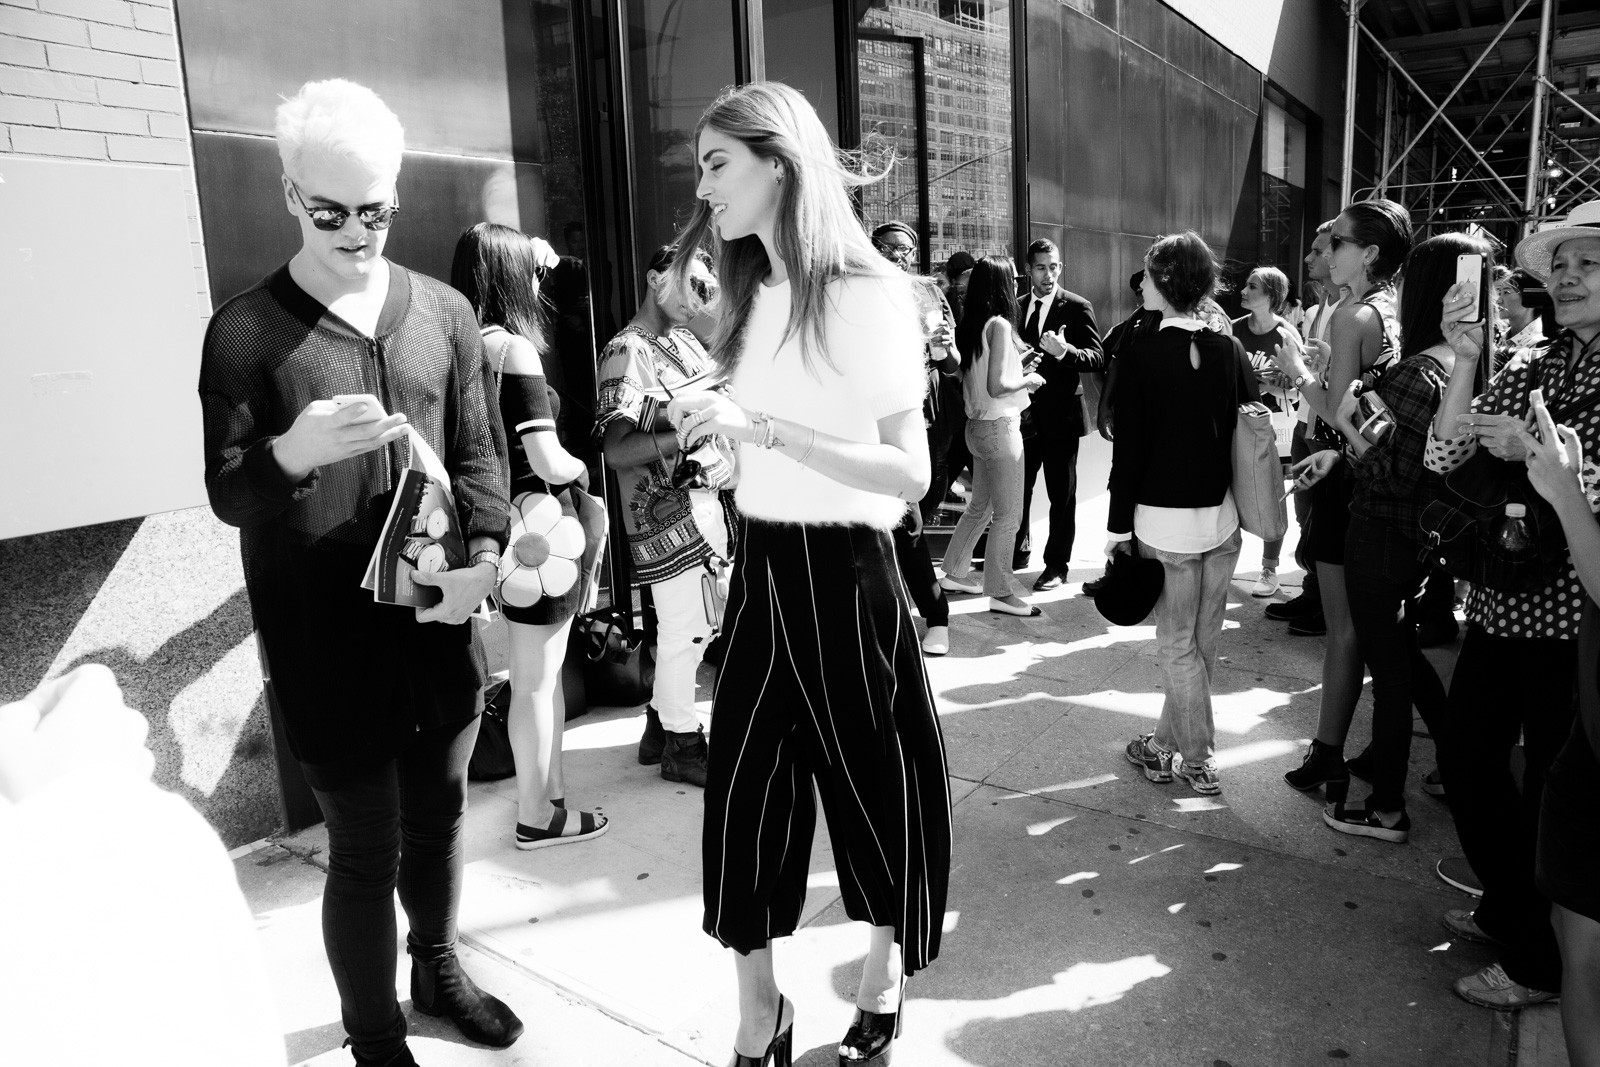 Outside the Calvin Klein Spring 2016 Runway Show during New York Fashion Week at Spring Studios on September 17, 2015 in New York City, USA.